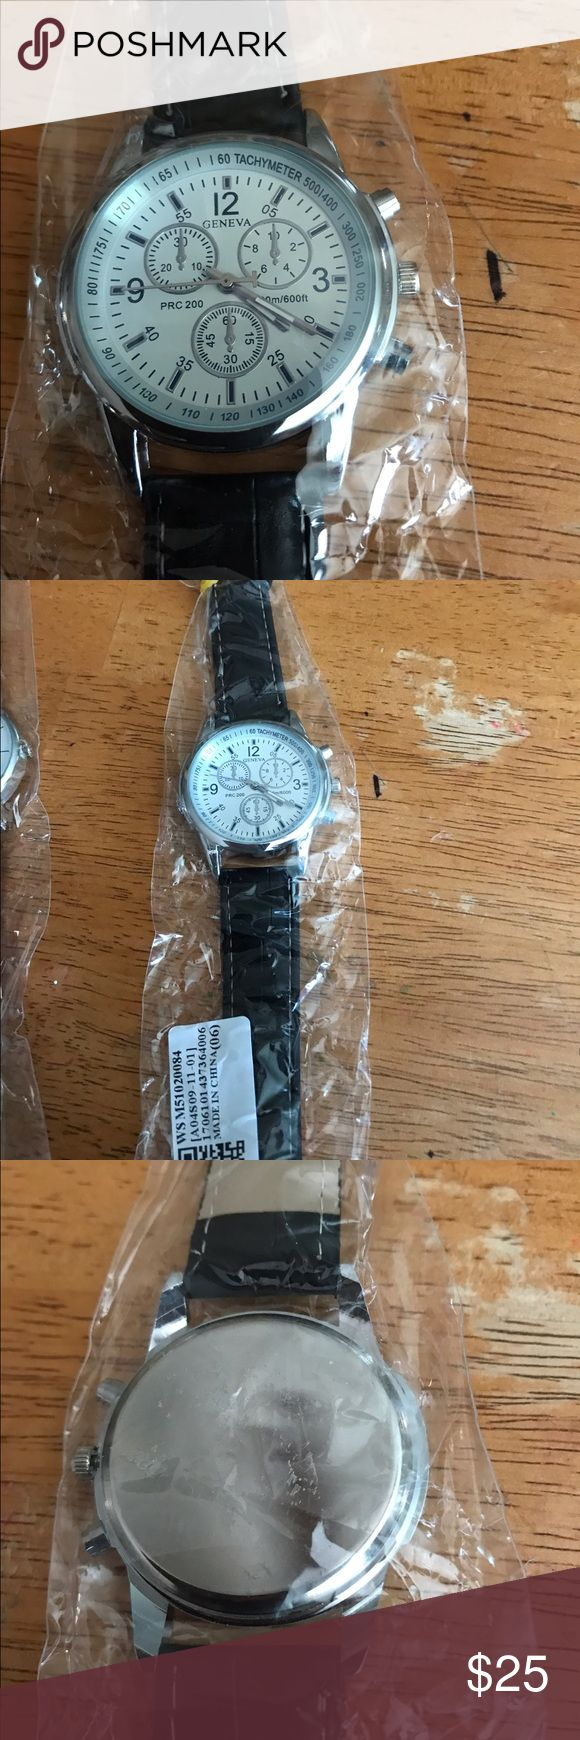 Black white and silver watch ReAlly nice men's watch black band watch is silver with white face Accessories Watches